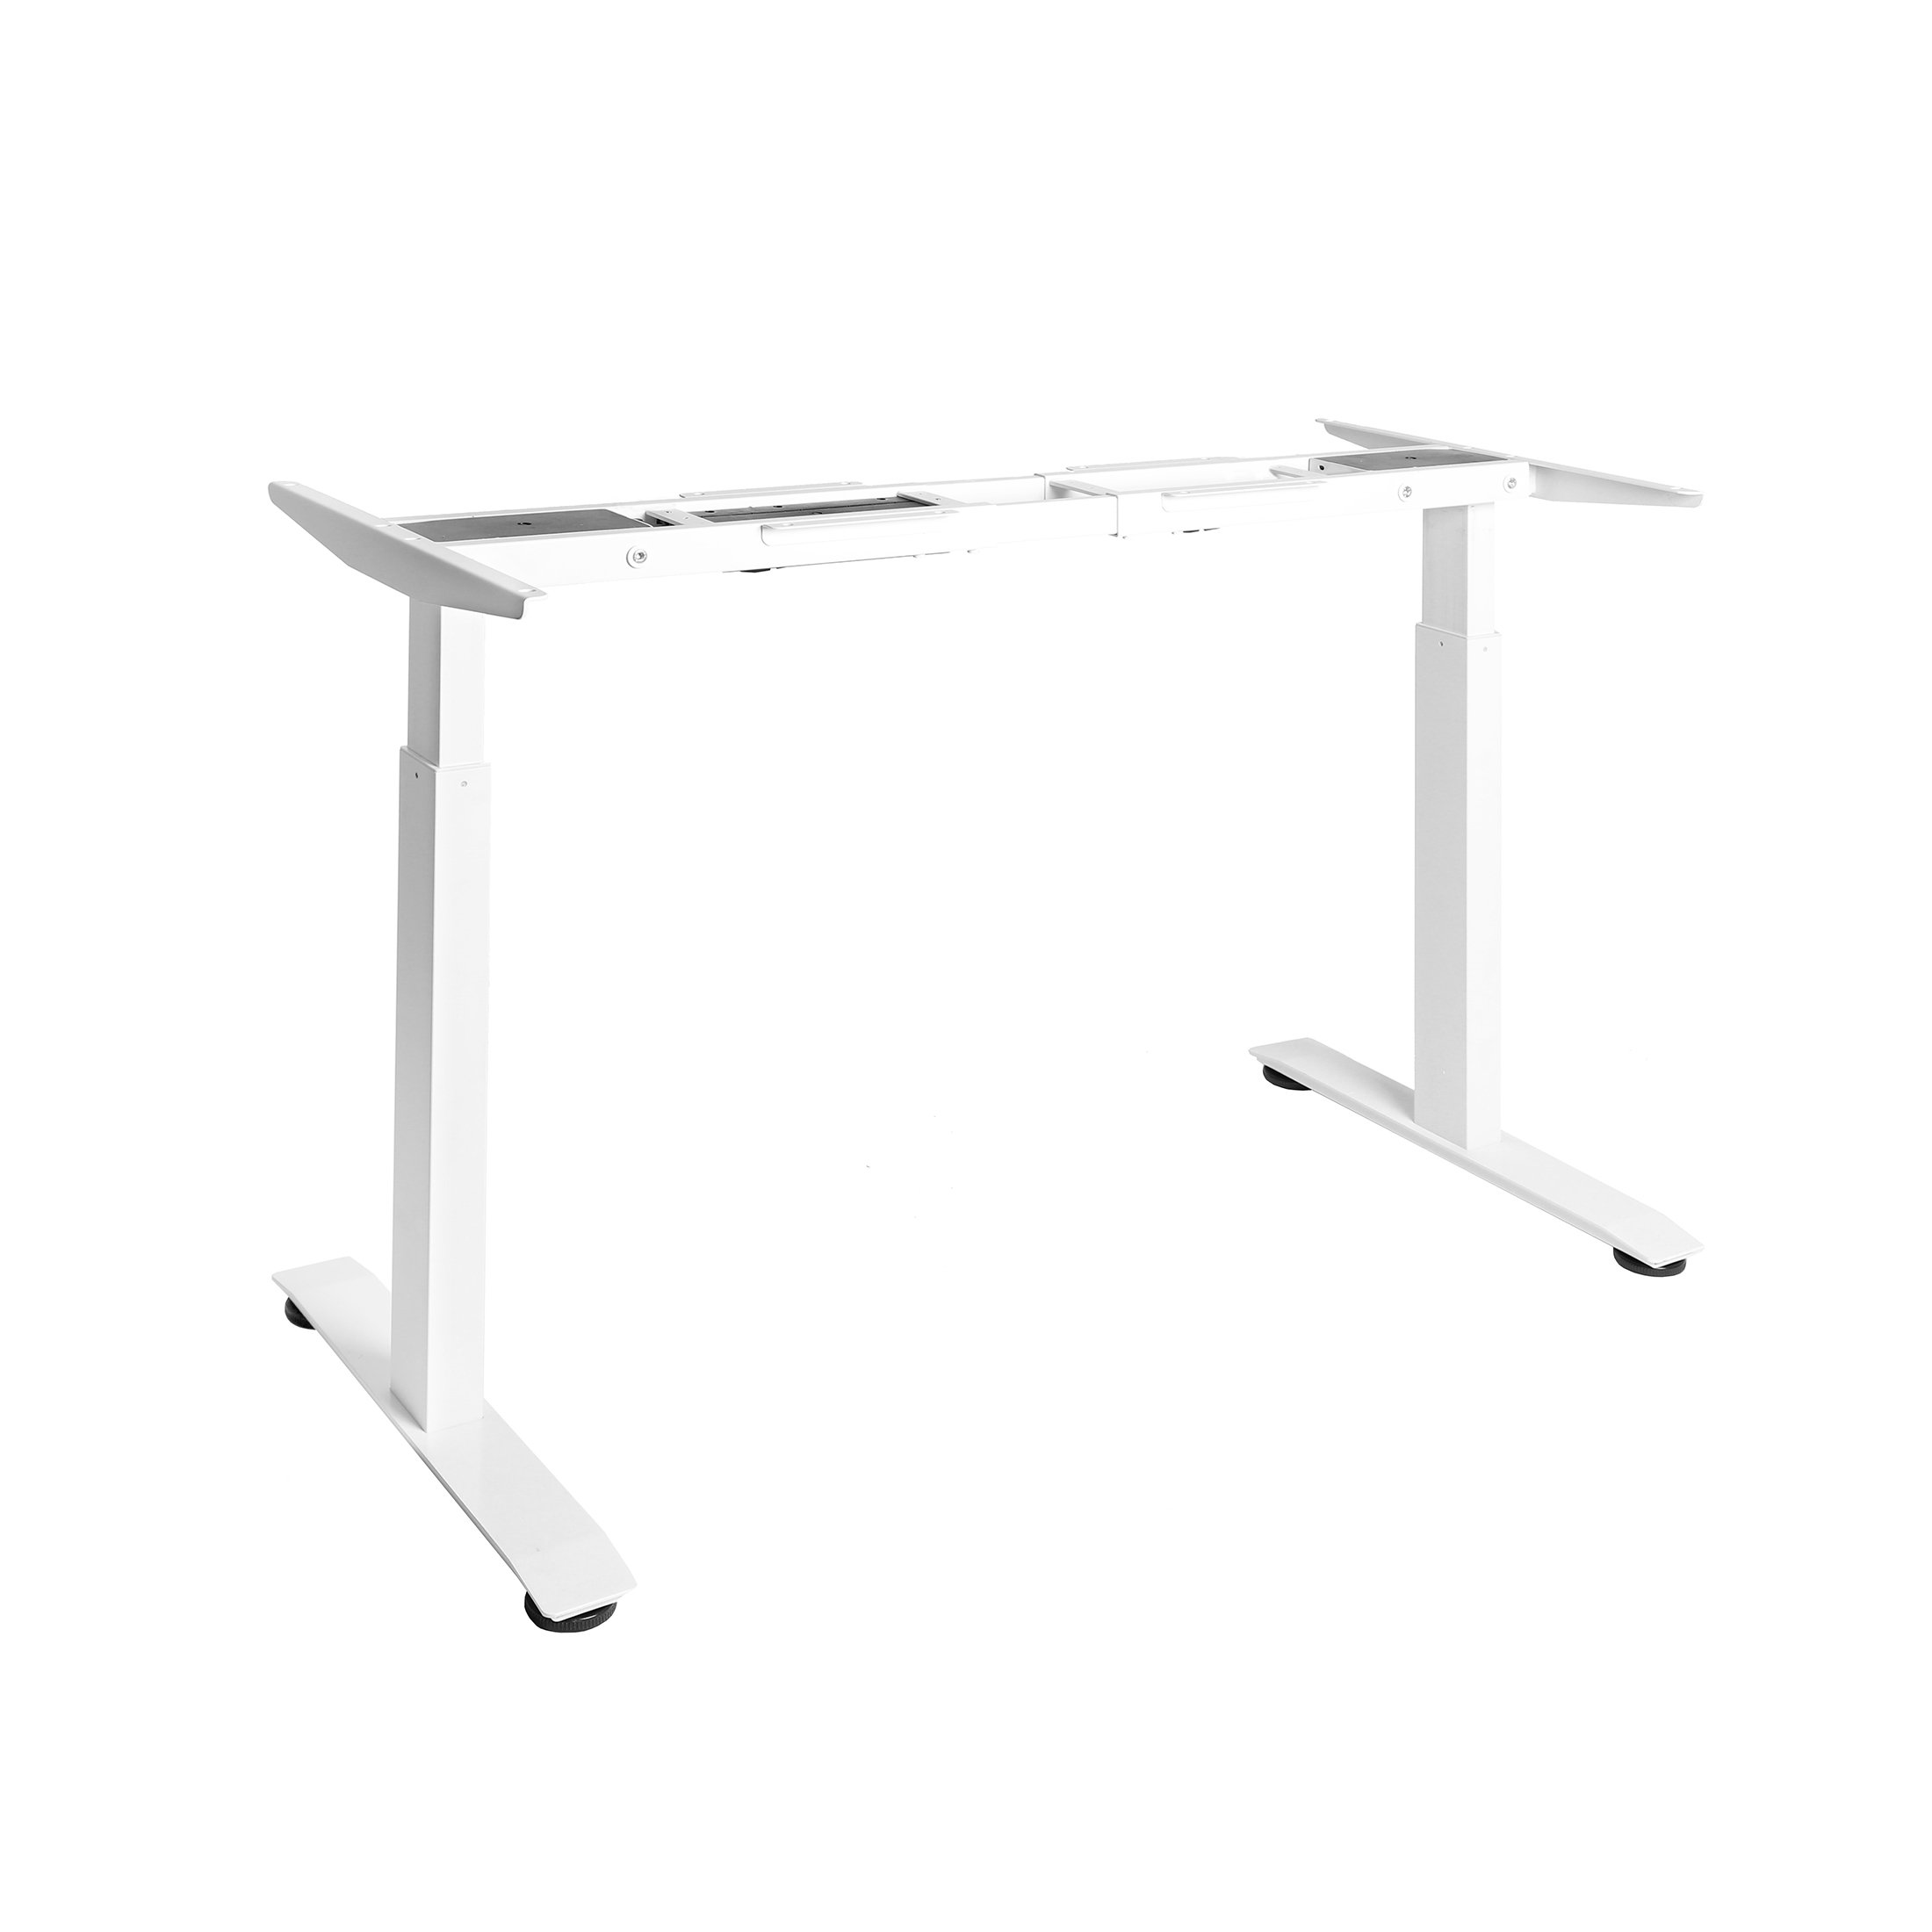 Seville Classics AIRLIFT S2 Electric Standing Desk Frame (Rises to 47.4'')/w 4 Memory Buttons LED Height Display - Base Only, Extends 45'' to 62.9'' W, 2-Section Base, Dual Motors, White